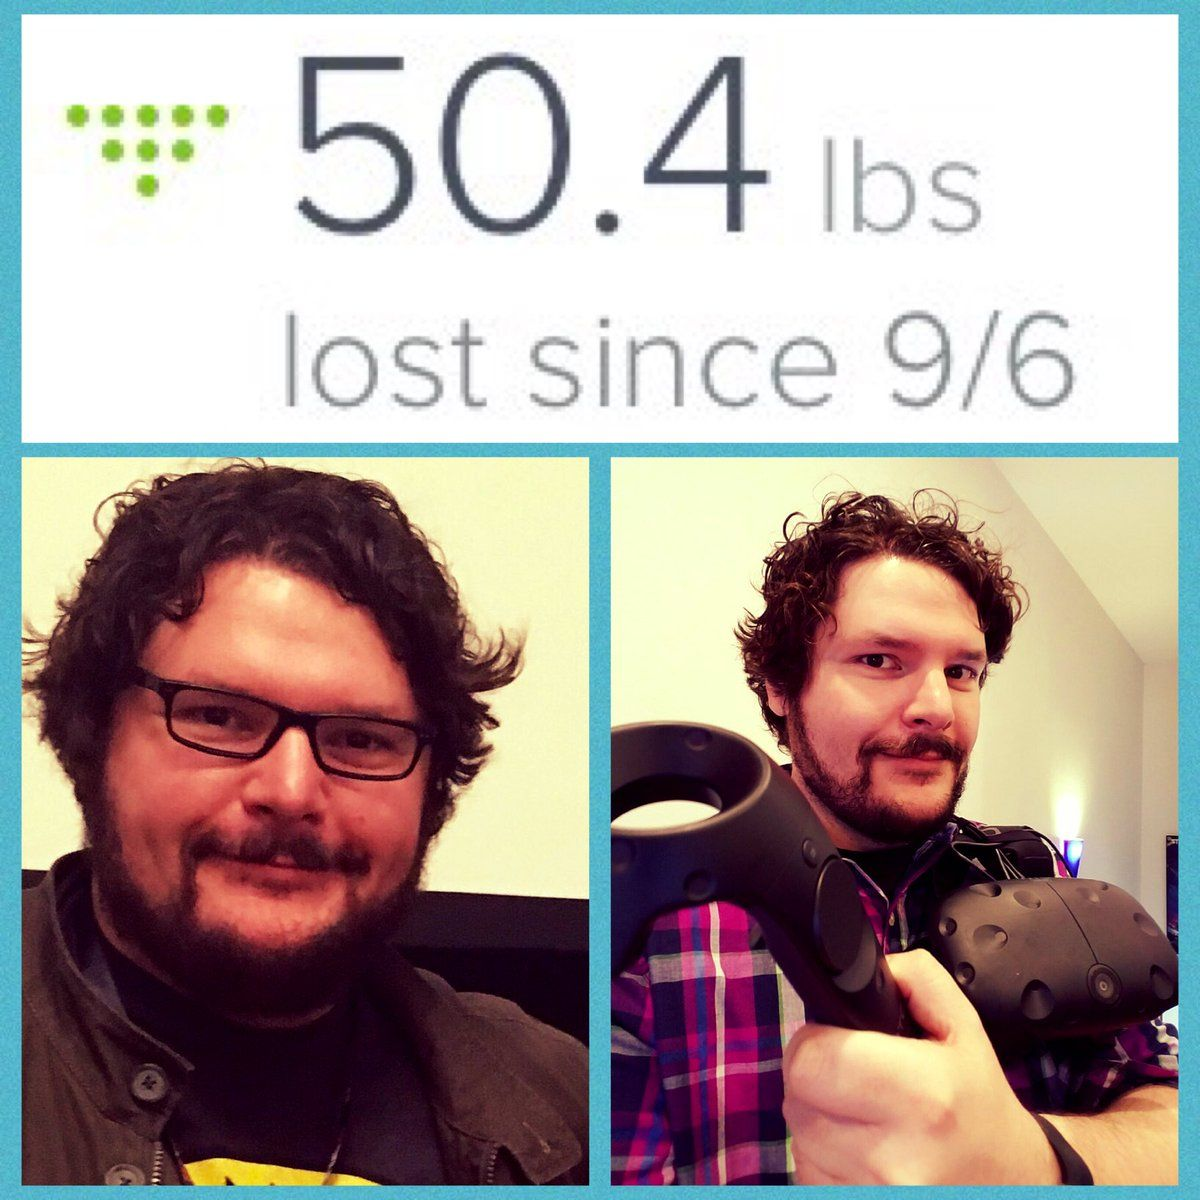 Man Loses 50 Pounds by Playing a VR Game Lose 50 pounds